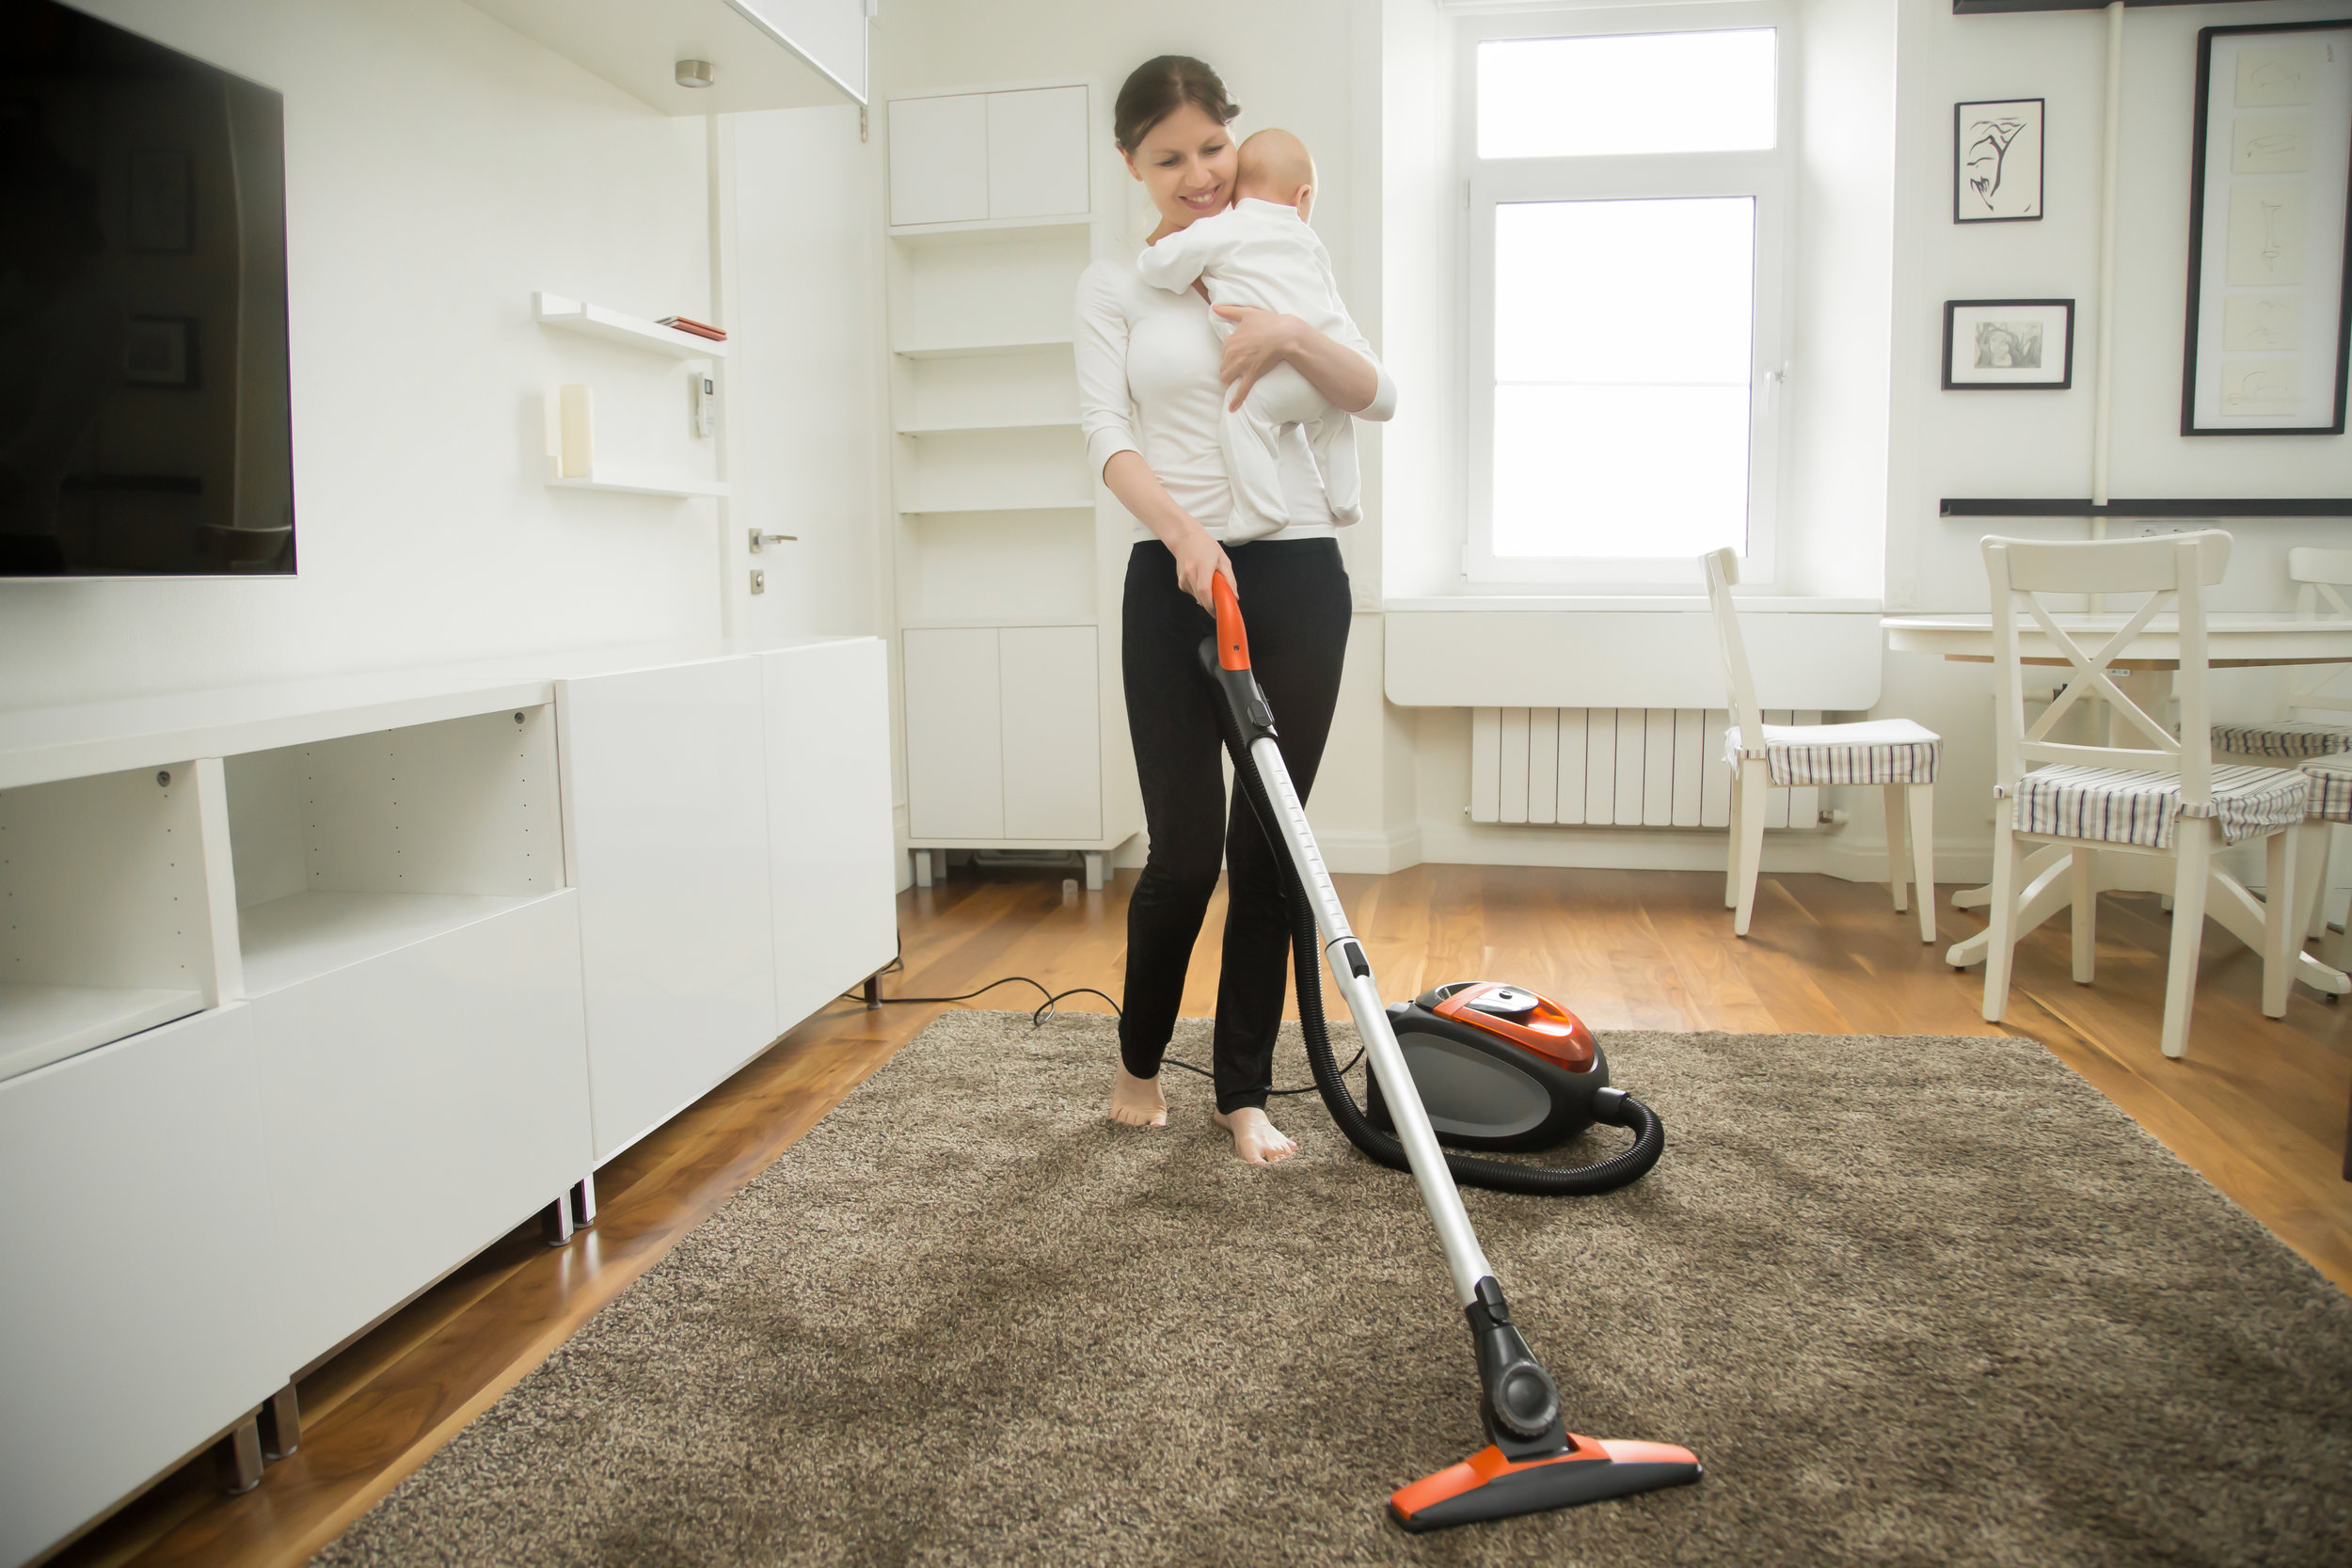 happy-smiling-woman-cleaning-the-carpet-holding-a-PGLLLMB.jpg